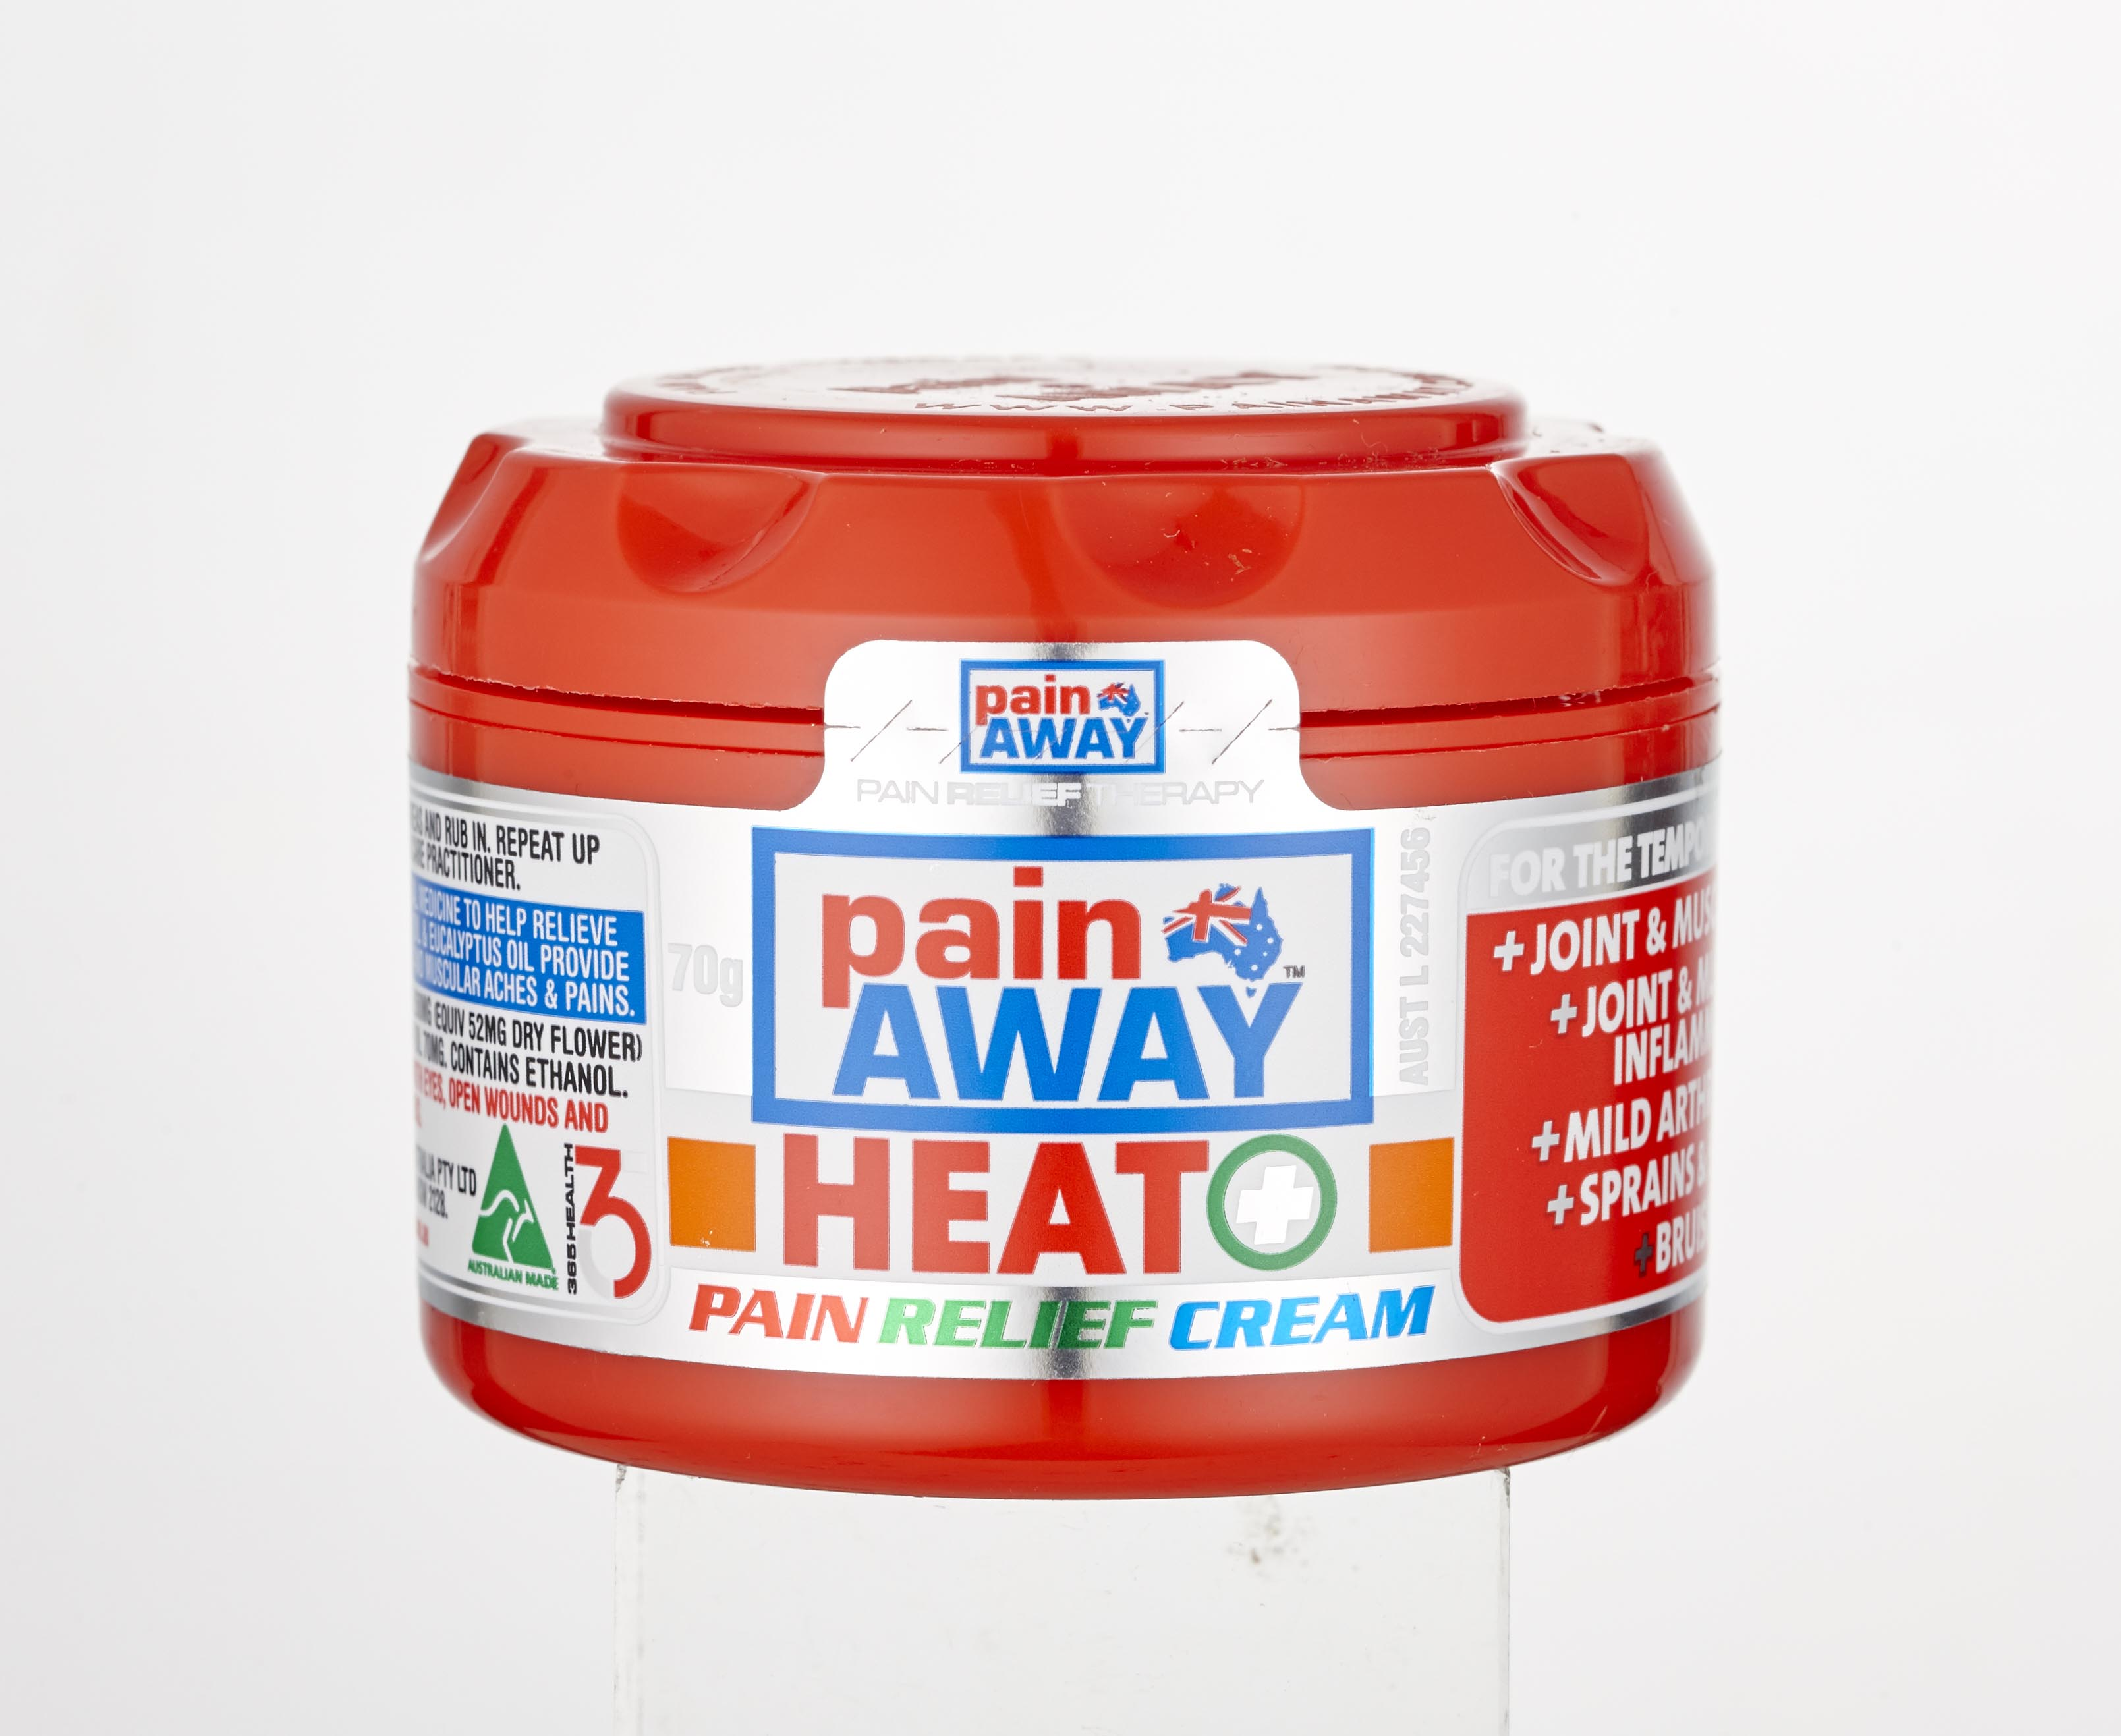 Photography Services - Pain Away Heat Pain Relief Cream